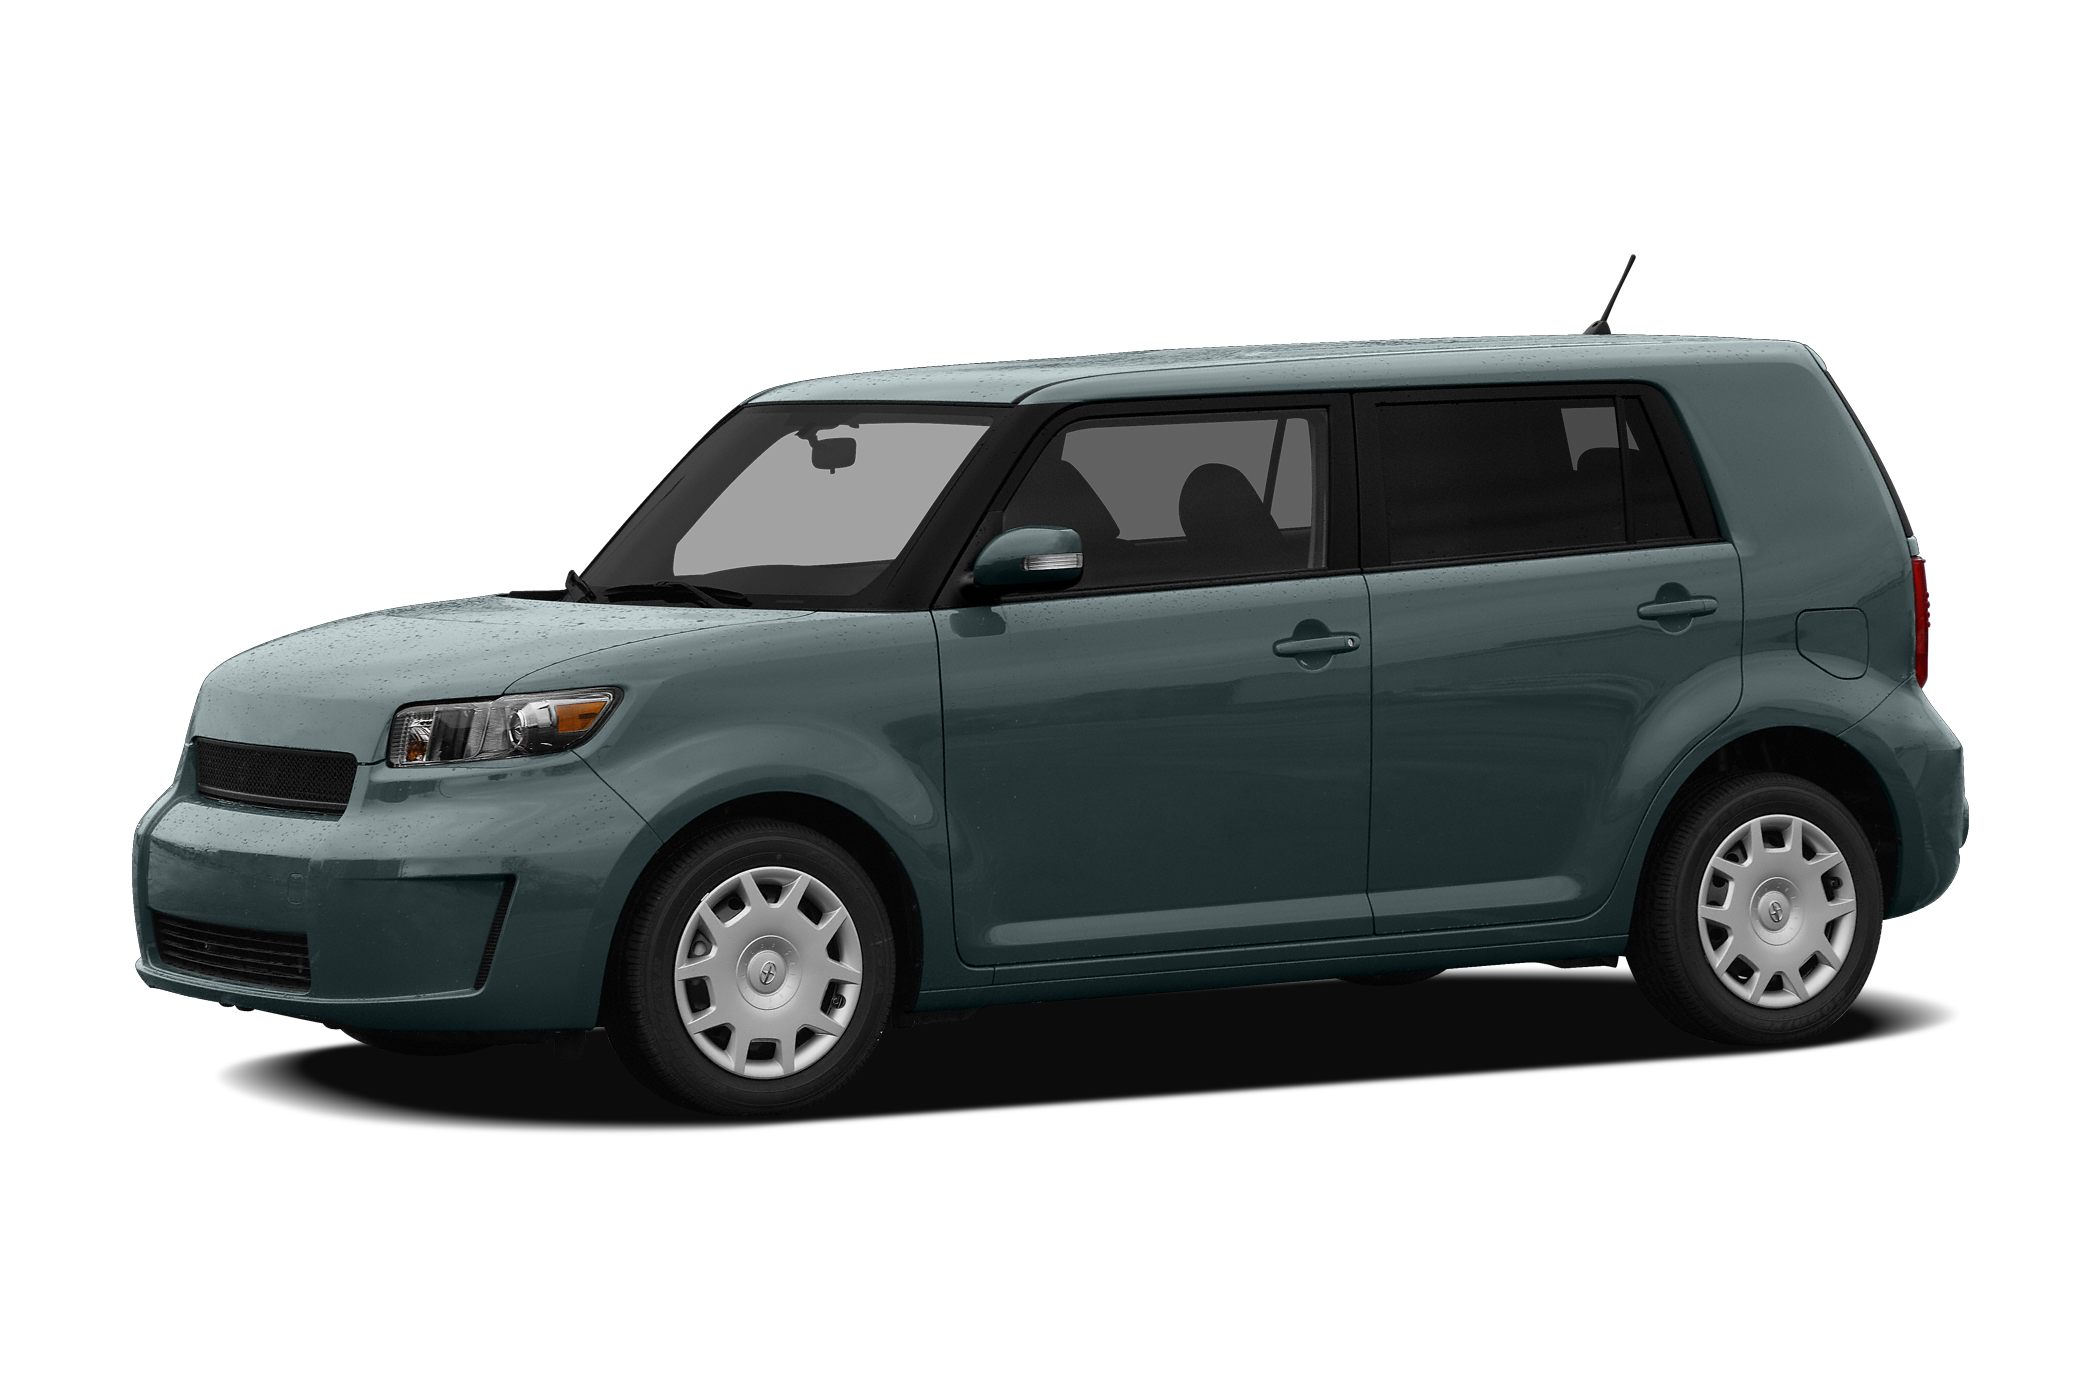 2008 Scion XB Wagon for sale in Moyock for $5,500 with 155,103 miles.